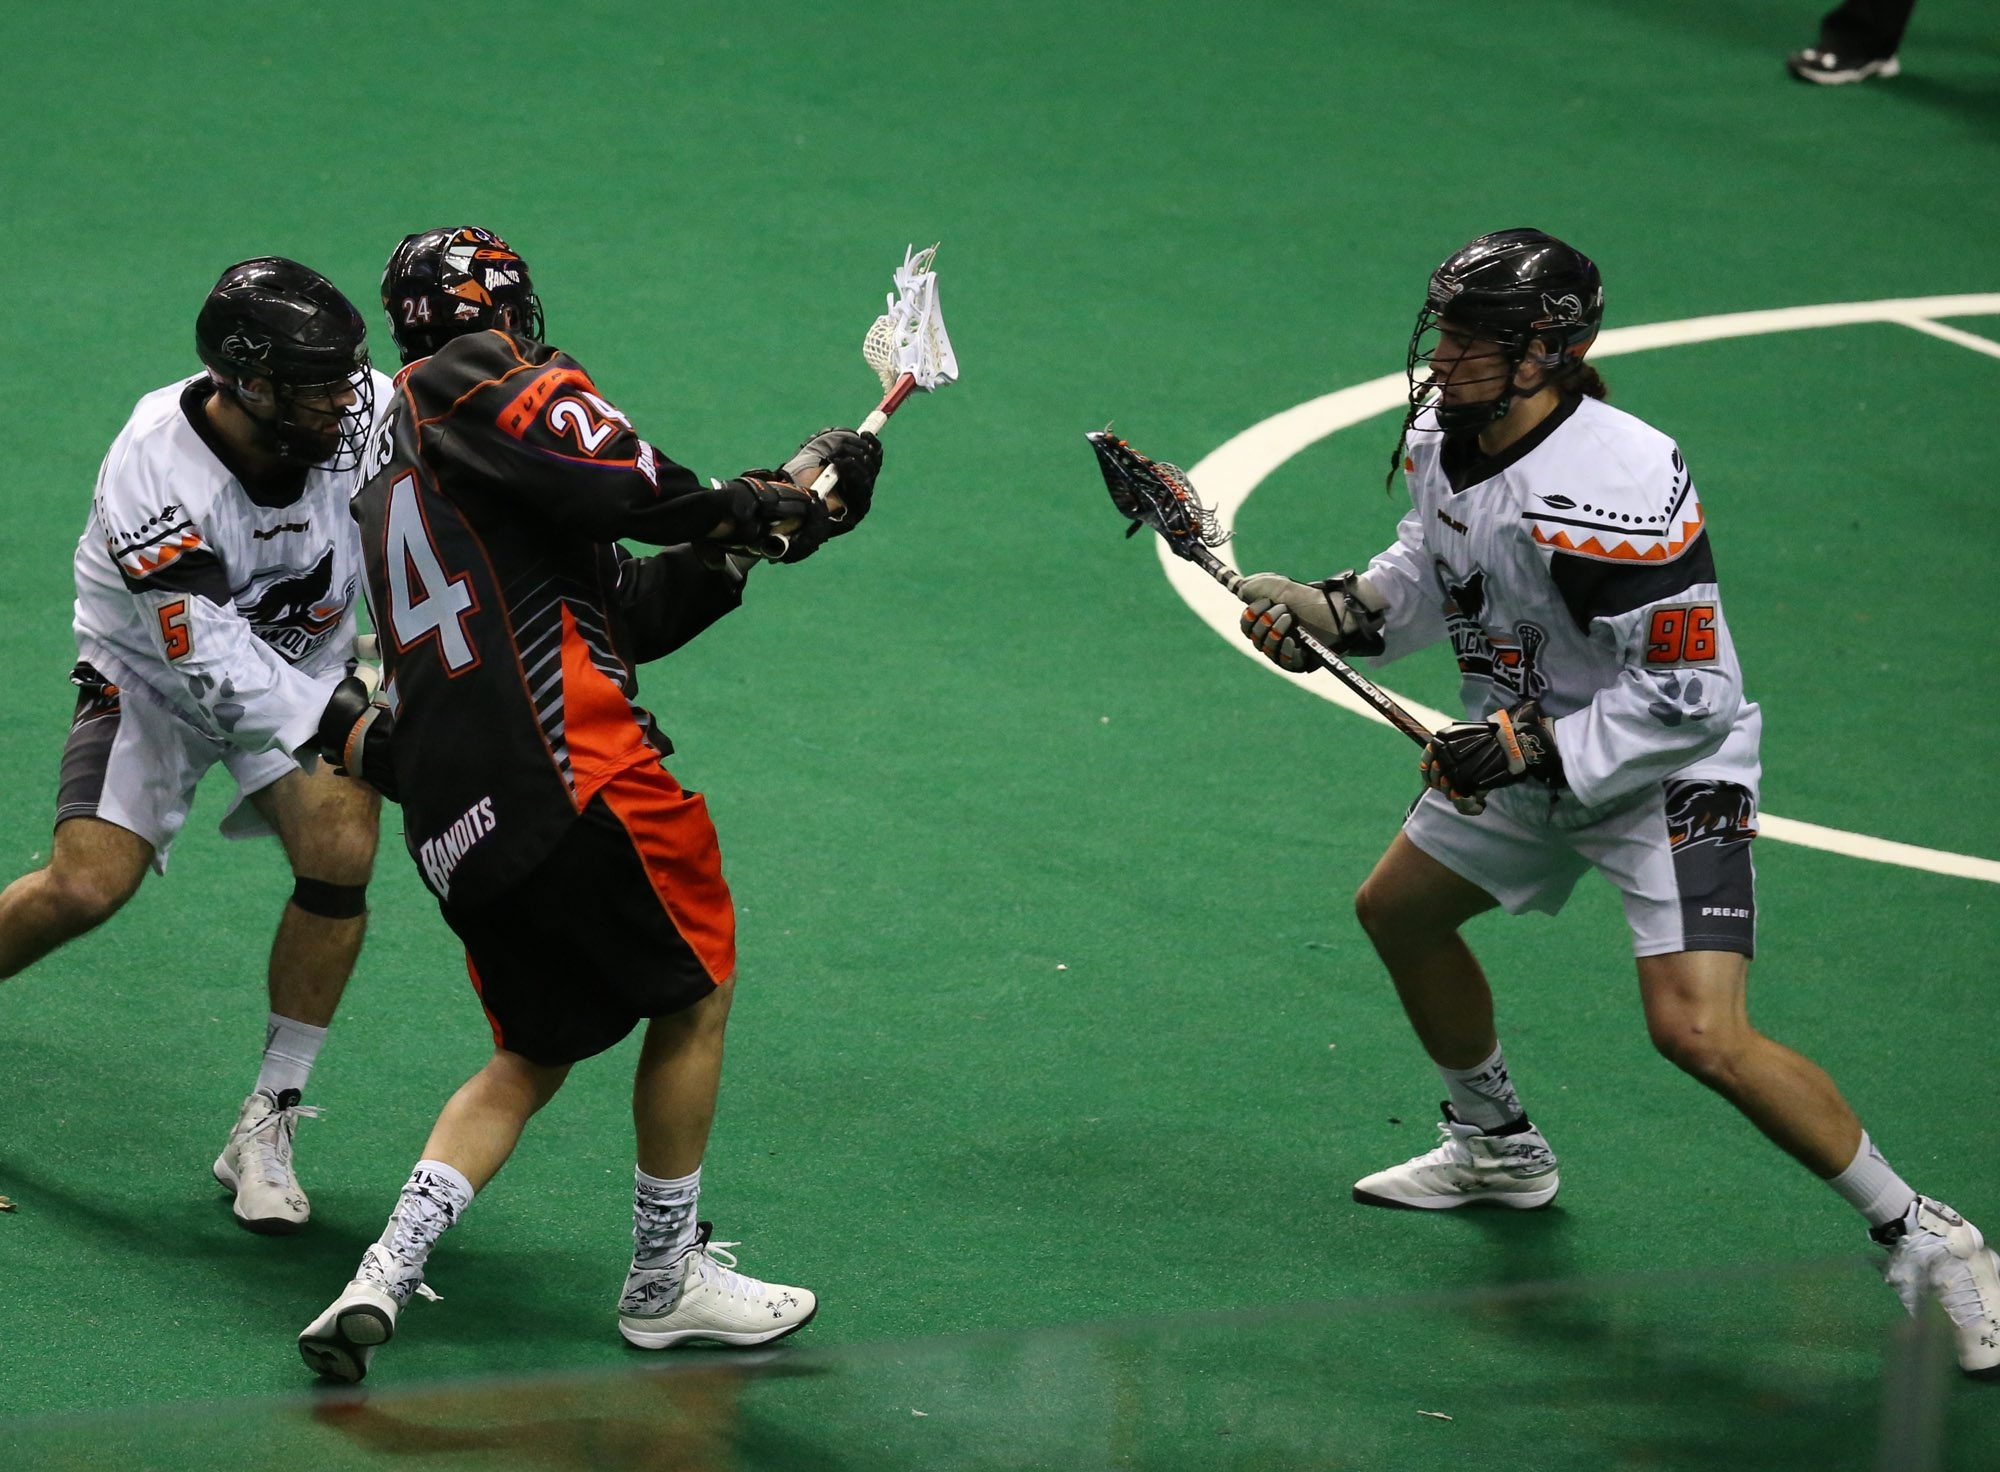 The Bandits' Mitch Jones lets go a shot past New England's Mike Manley during the first quarter of action Saturday night at First Niagara Center.